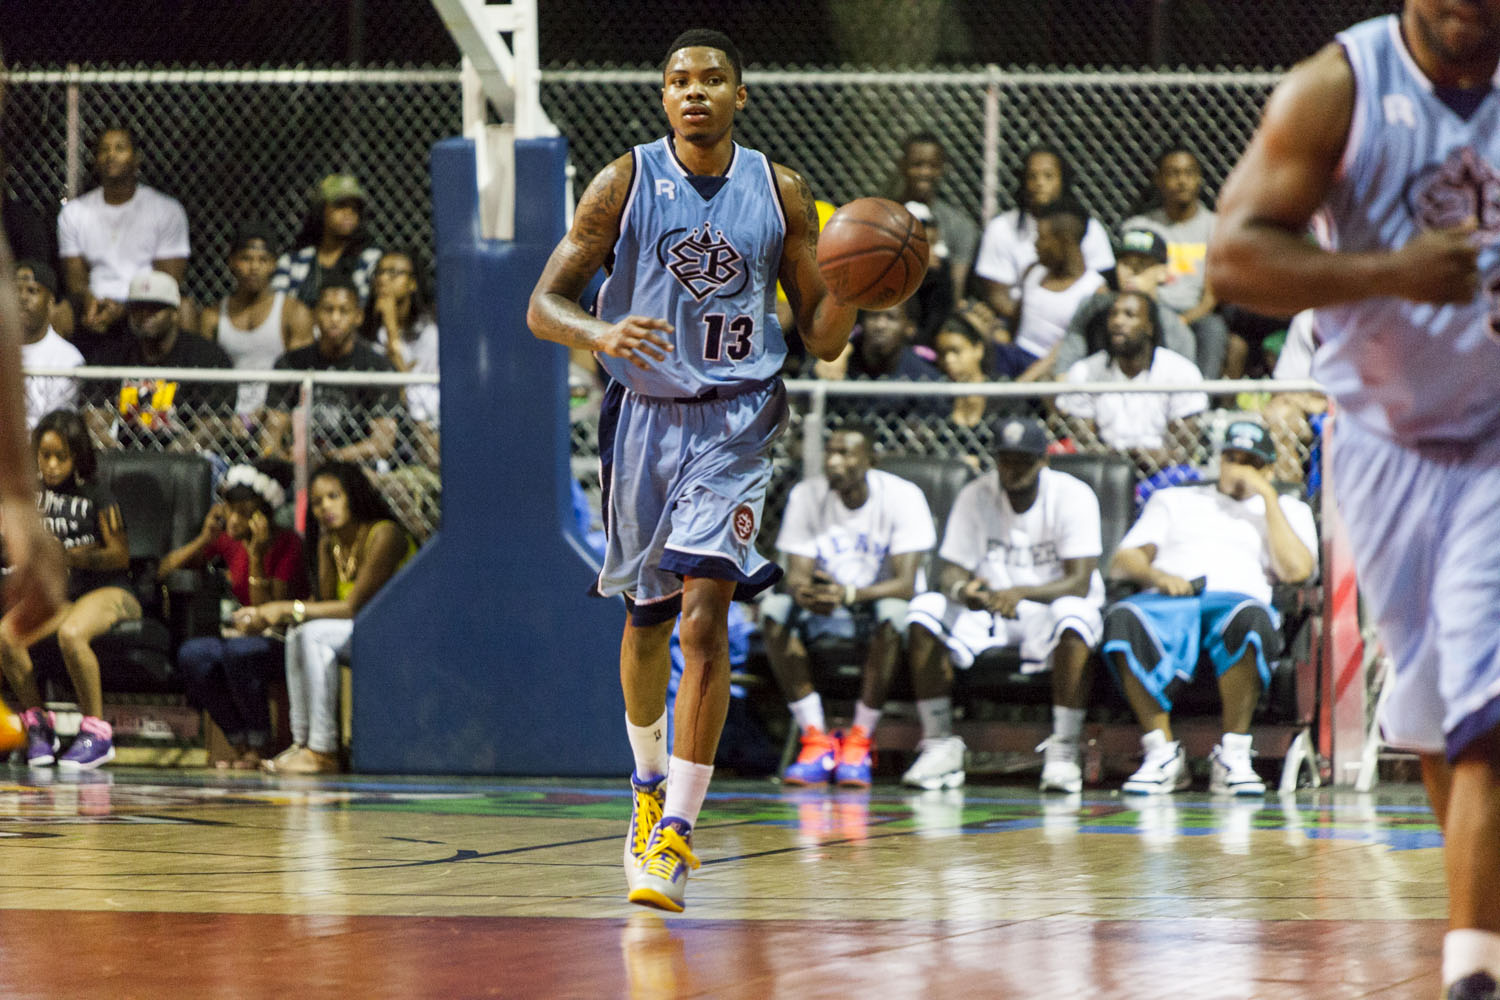 Kent Bazemore of the Golden State Warriors showed true grit and passion for the game when he played through a bloody shin at the EBC in Harlem.